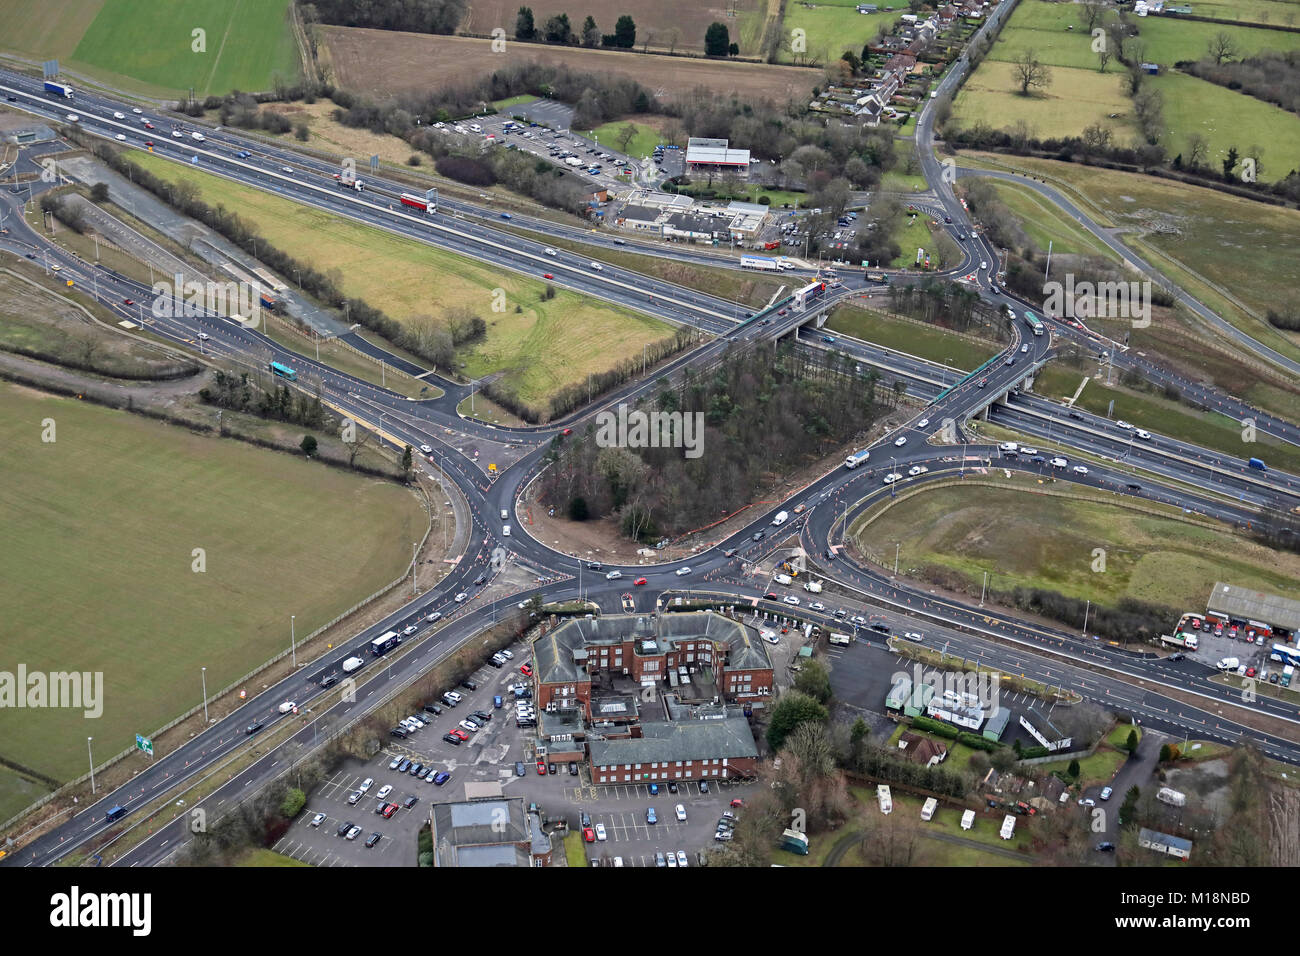 aerial view of Scotch Corner on the A1(M) motorway North Yorkshire, UK Stock Photo